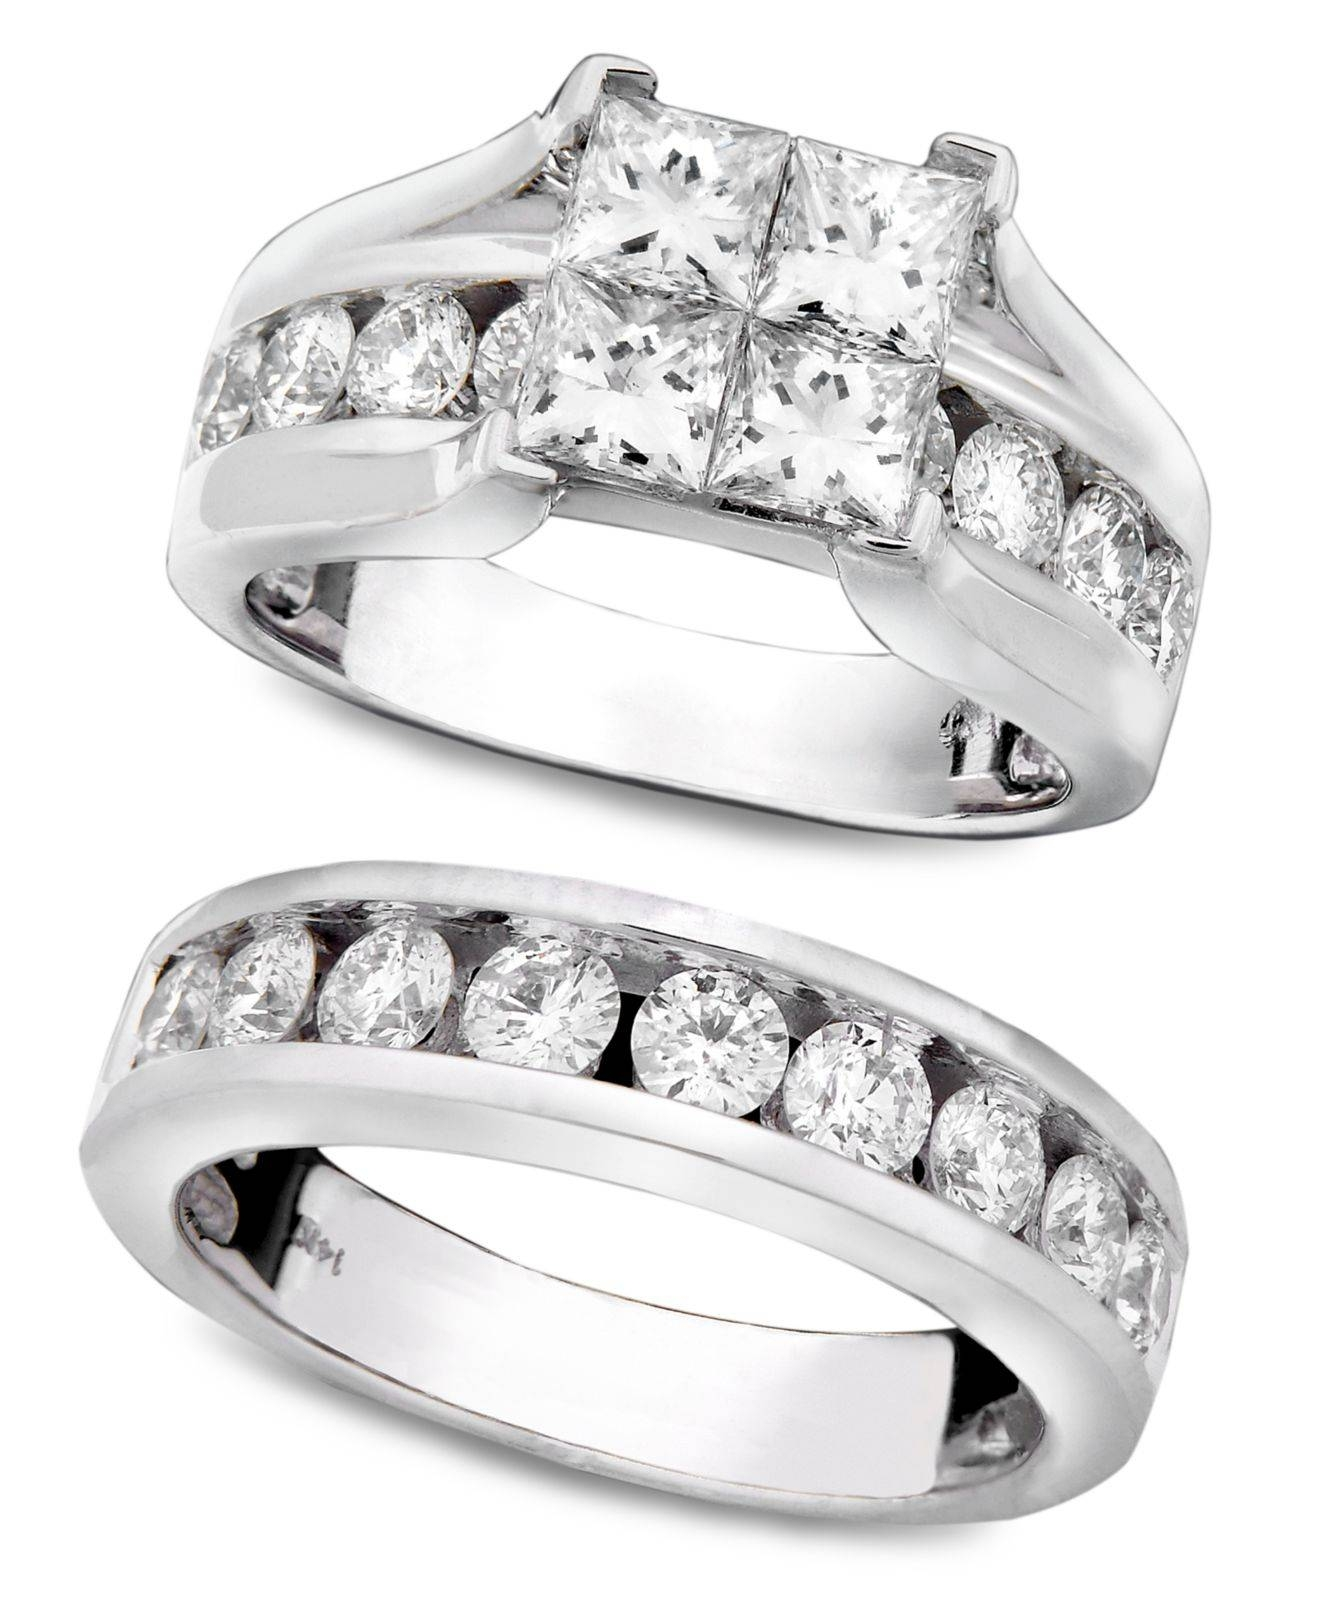 Macy Wedding Rings With Regard To Macys Men's Wedding Bands (View 14 of 15)